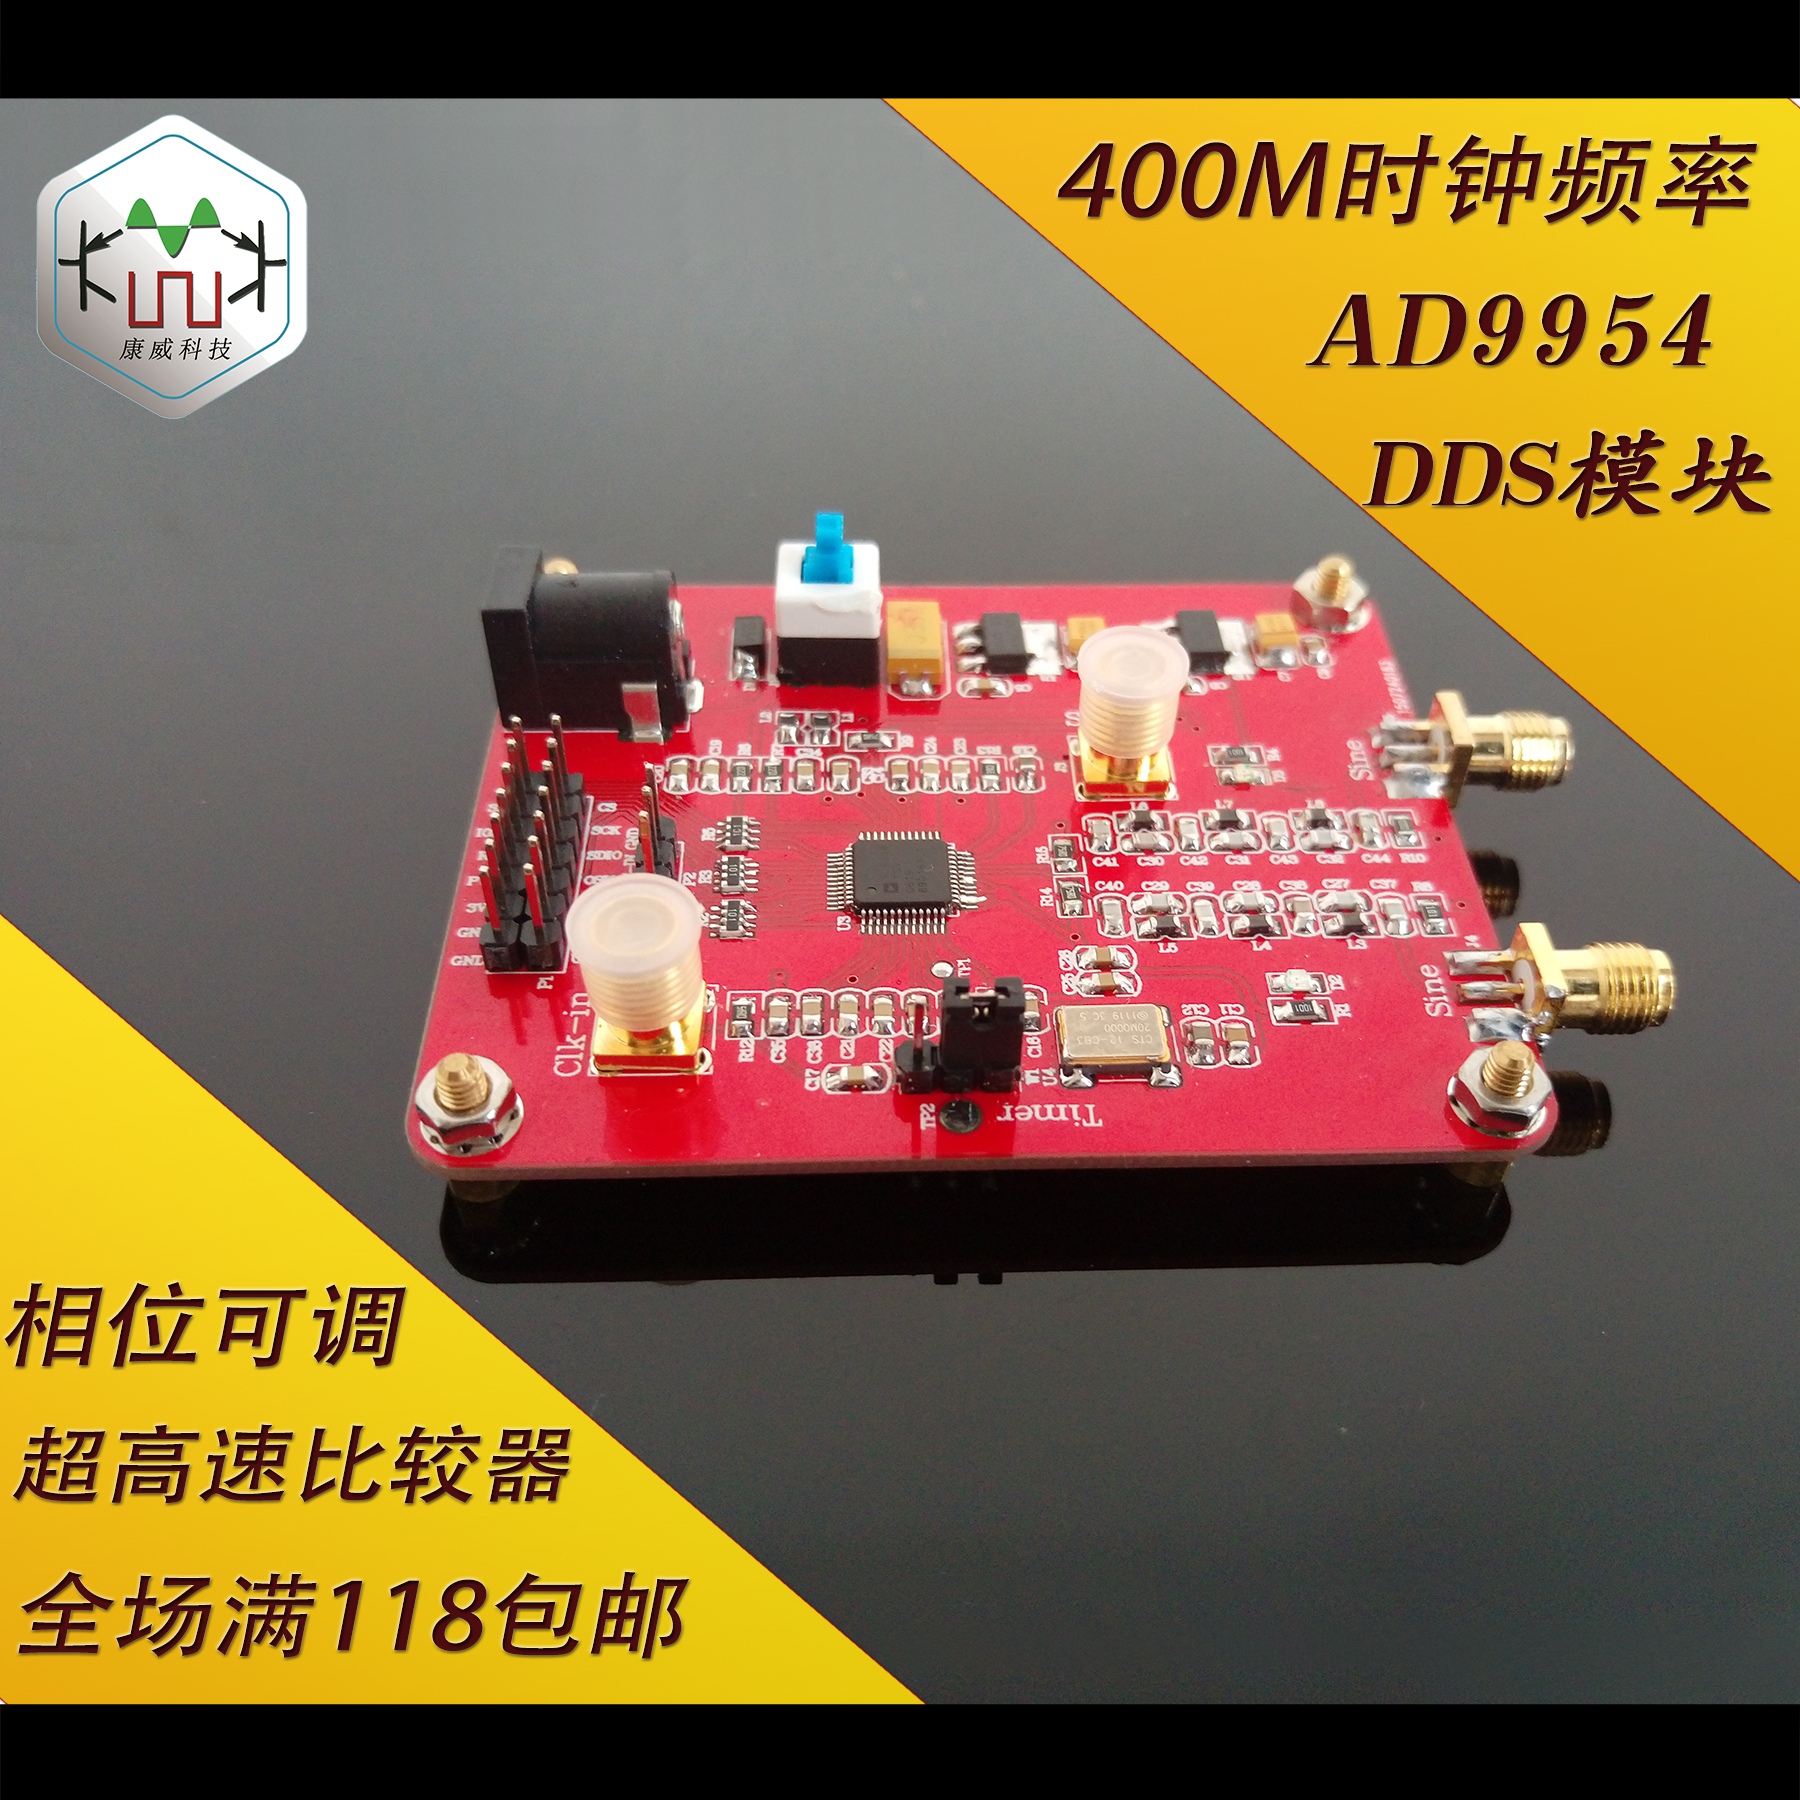 AD9954 high speed DDS module electronic competition 400M main frequency development board evaluation board signal generator xilinx fpga development board xilinx spartan 3e xc3s250e evaluation board kit lcd1602 lcd12864 12 modules open3s250e package b